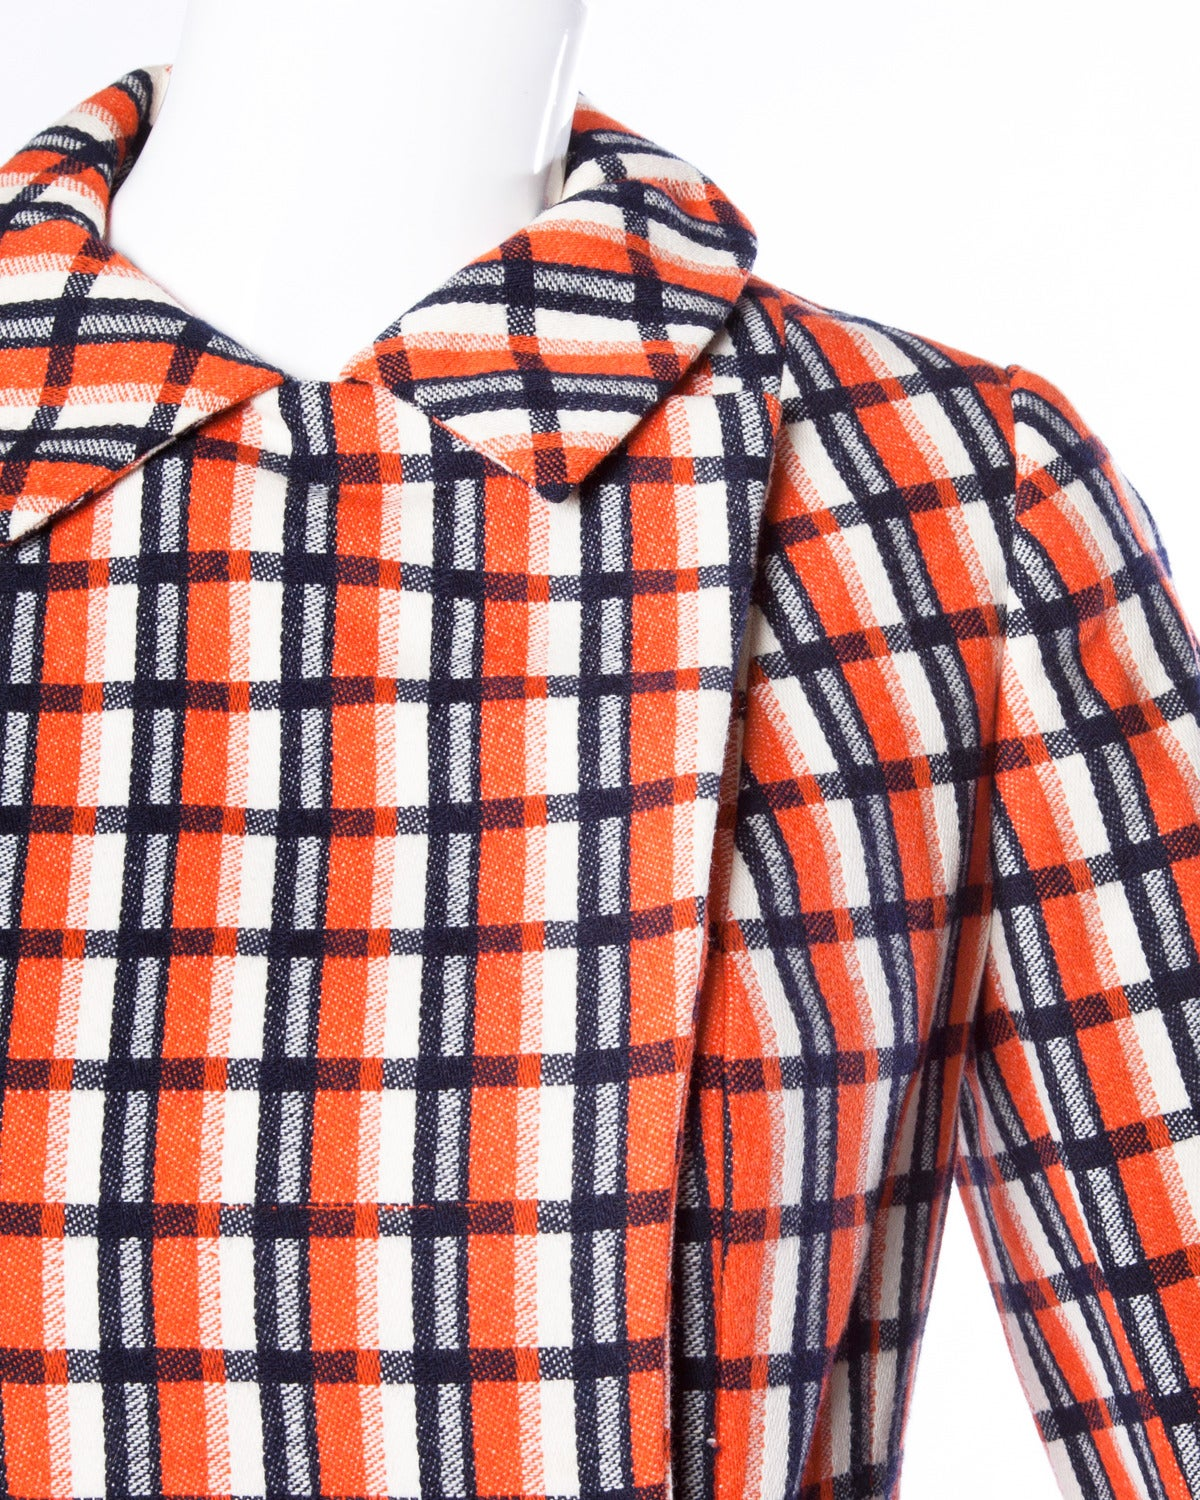 Vibrant plaid jacket and skirt set by Bill Blass for Maurice Rentner. Gold buttons and chain detail. Pleated skirt.  Details:  Fully Lined Front Snap Closure On Jacket/ Side Hook and Zip Closure On Skirt Estimated Size: XS Color: Orange/